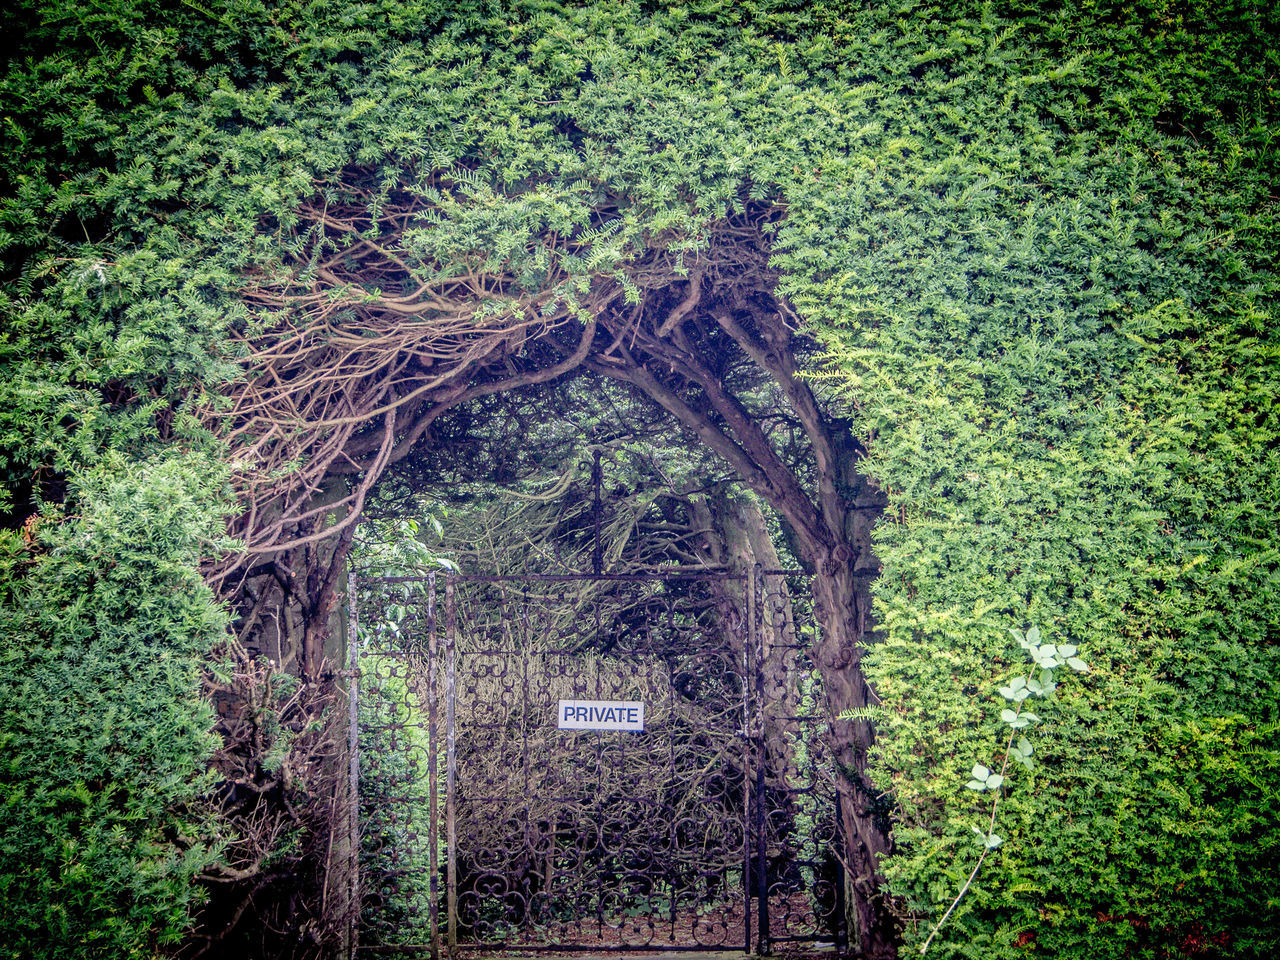 Architecture Beauty In Nature Creeper Plant Day Gate Green Wall Growth Ivy Nature No People Outdoors Plant Private Area Sign Tor Tree